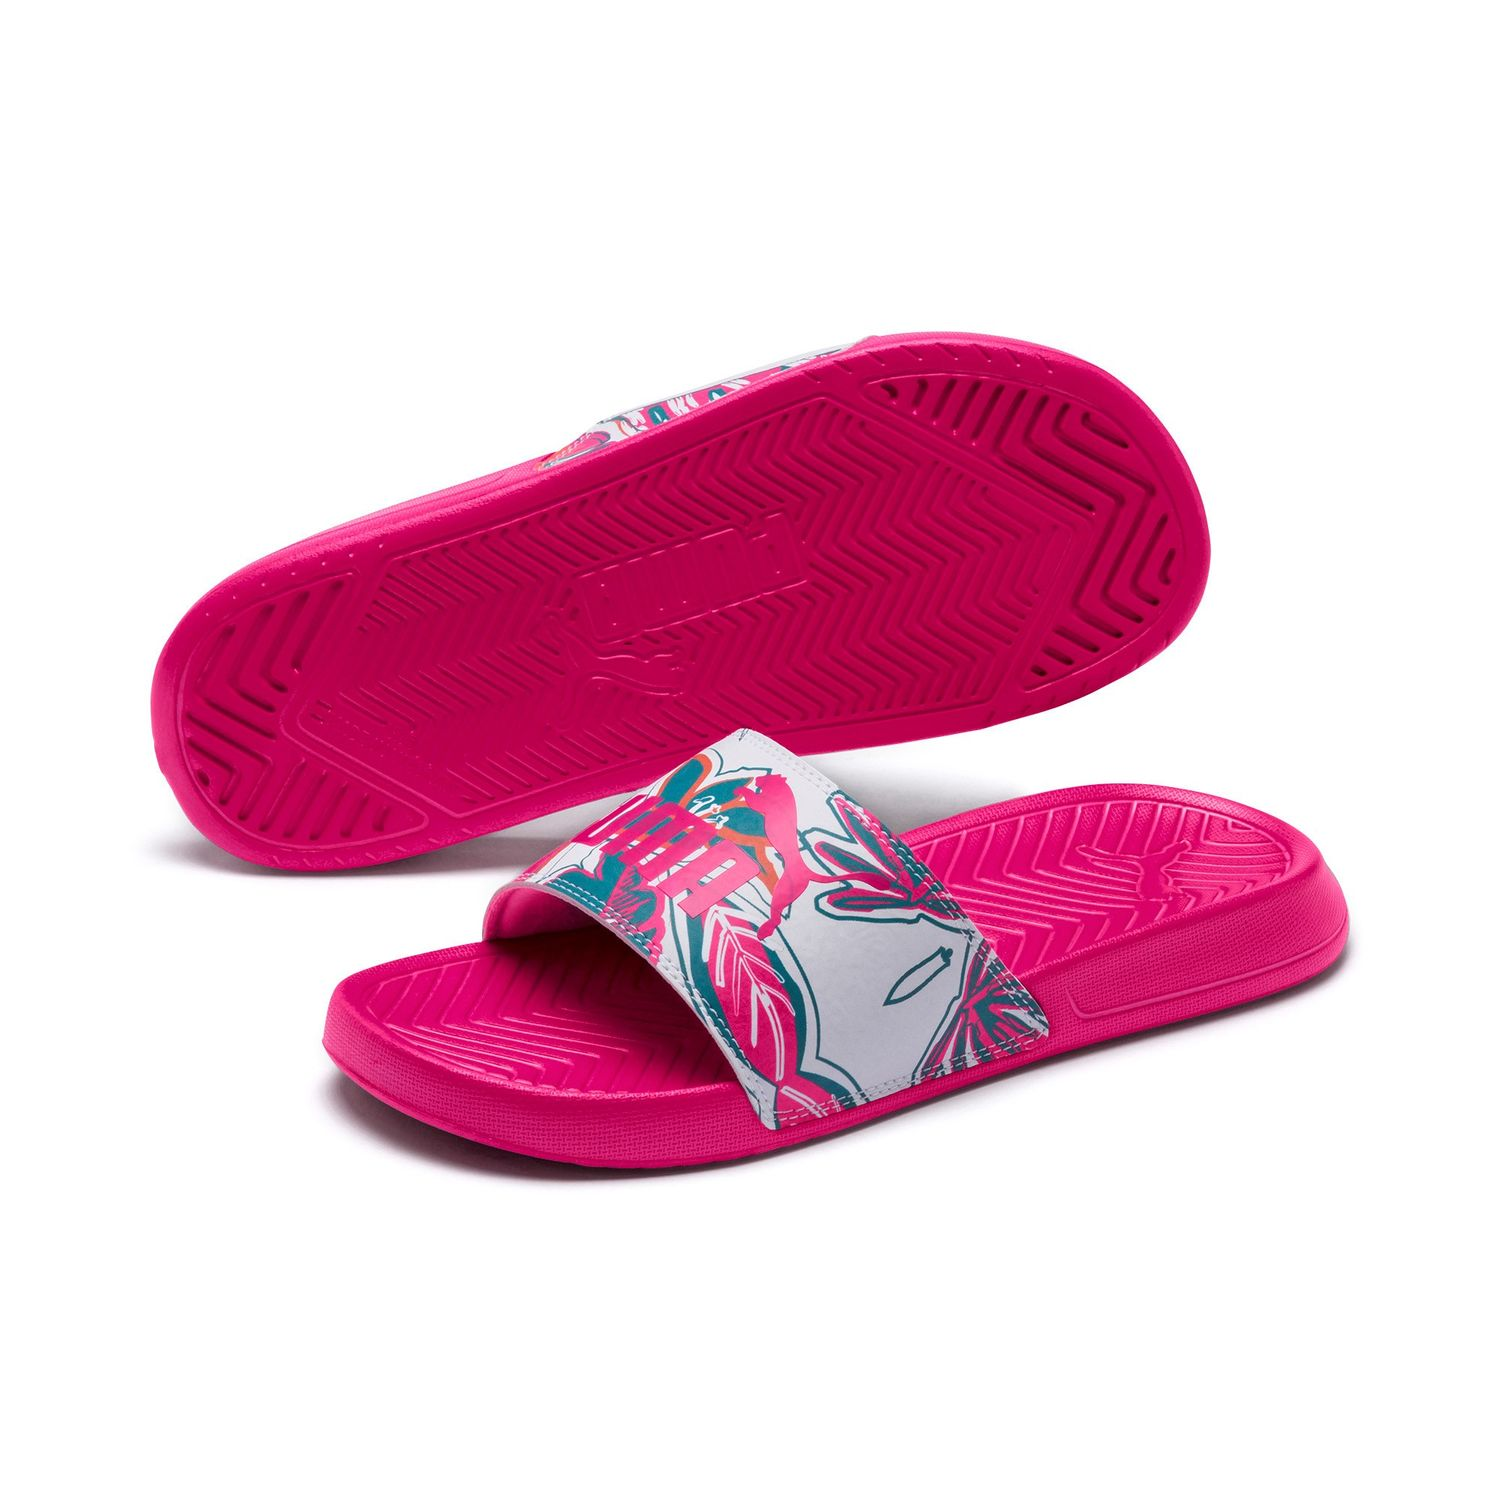 Details about Puma Ladies Slippers Beach Sandals Popcat Flower Power Wns 369423 Fuchsia Purple